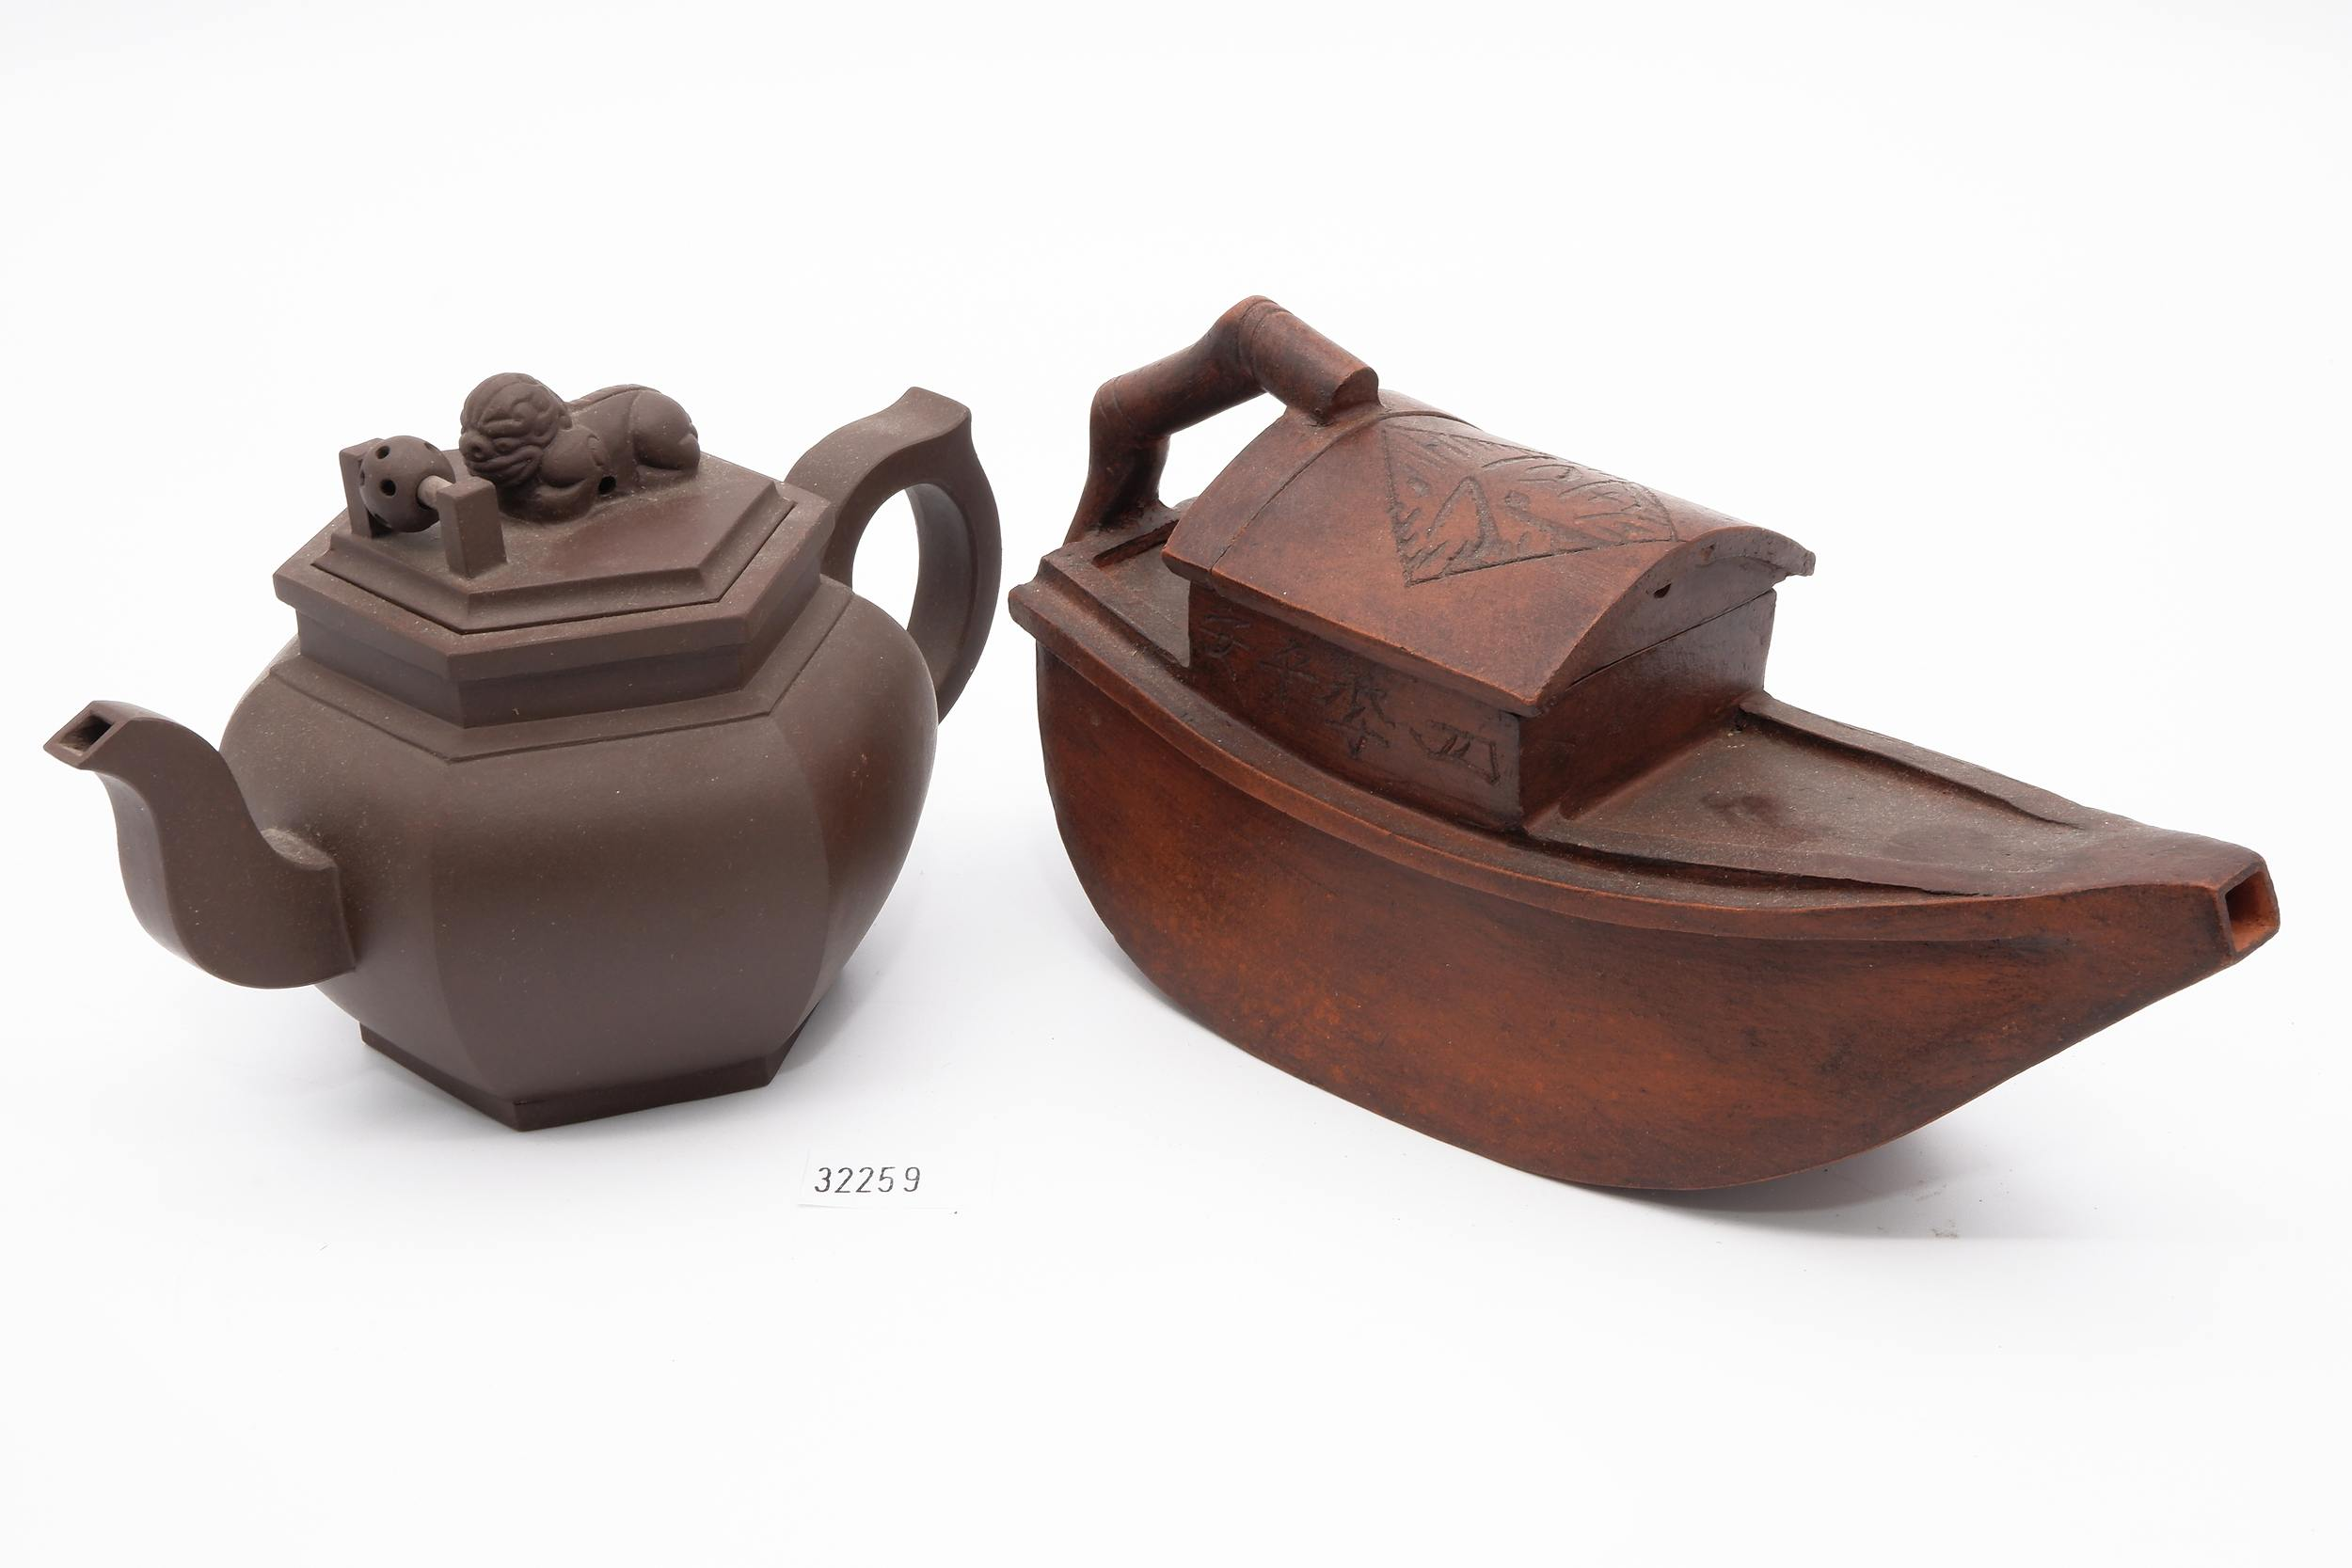 'Two Chinese Yixing Pottery Teapots Including Boat Shaped'